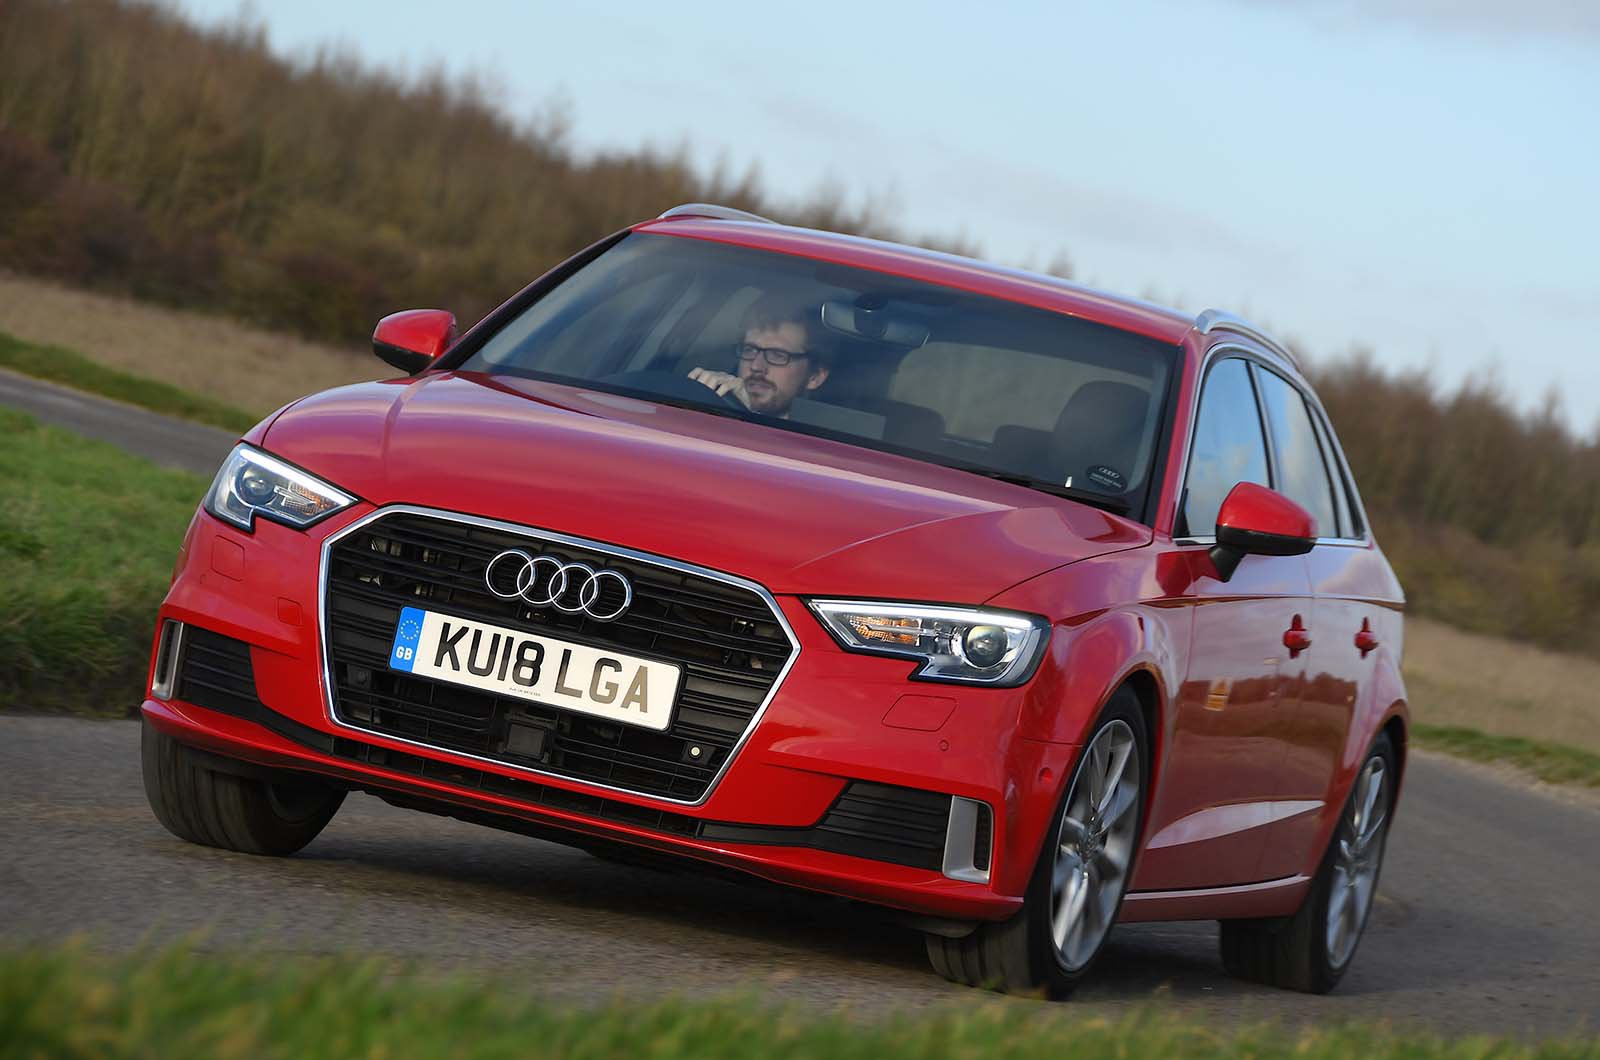 Used Audi A3 (13-present) long term test review front corner